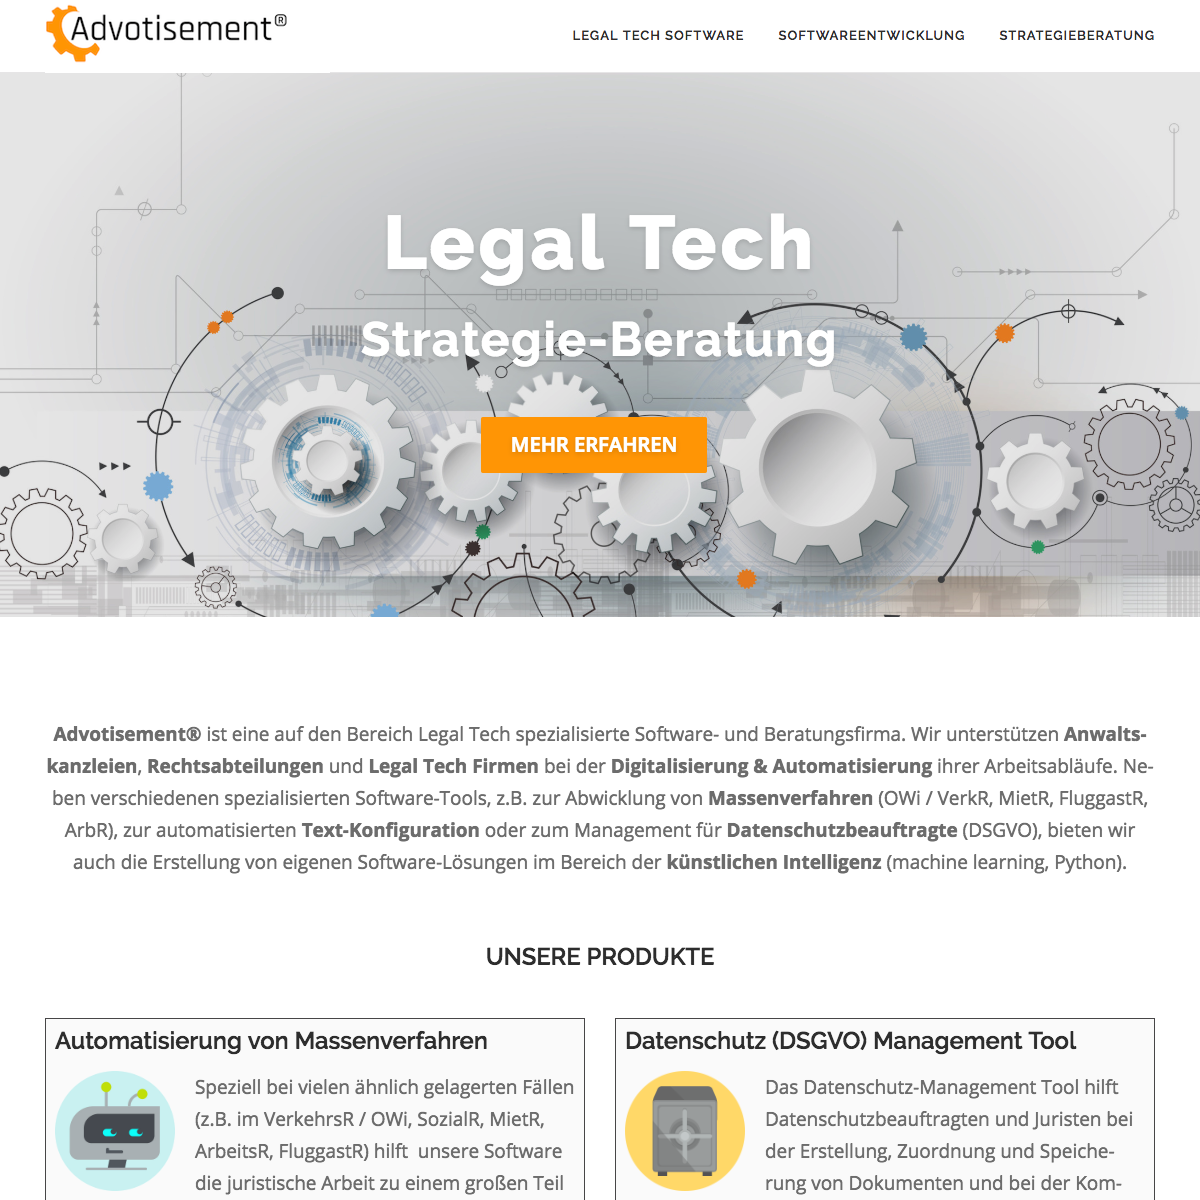 ADVOTISEMENT LEGAL TECH